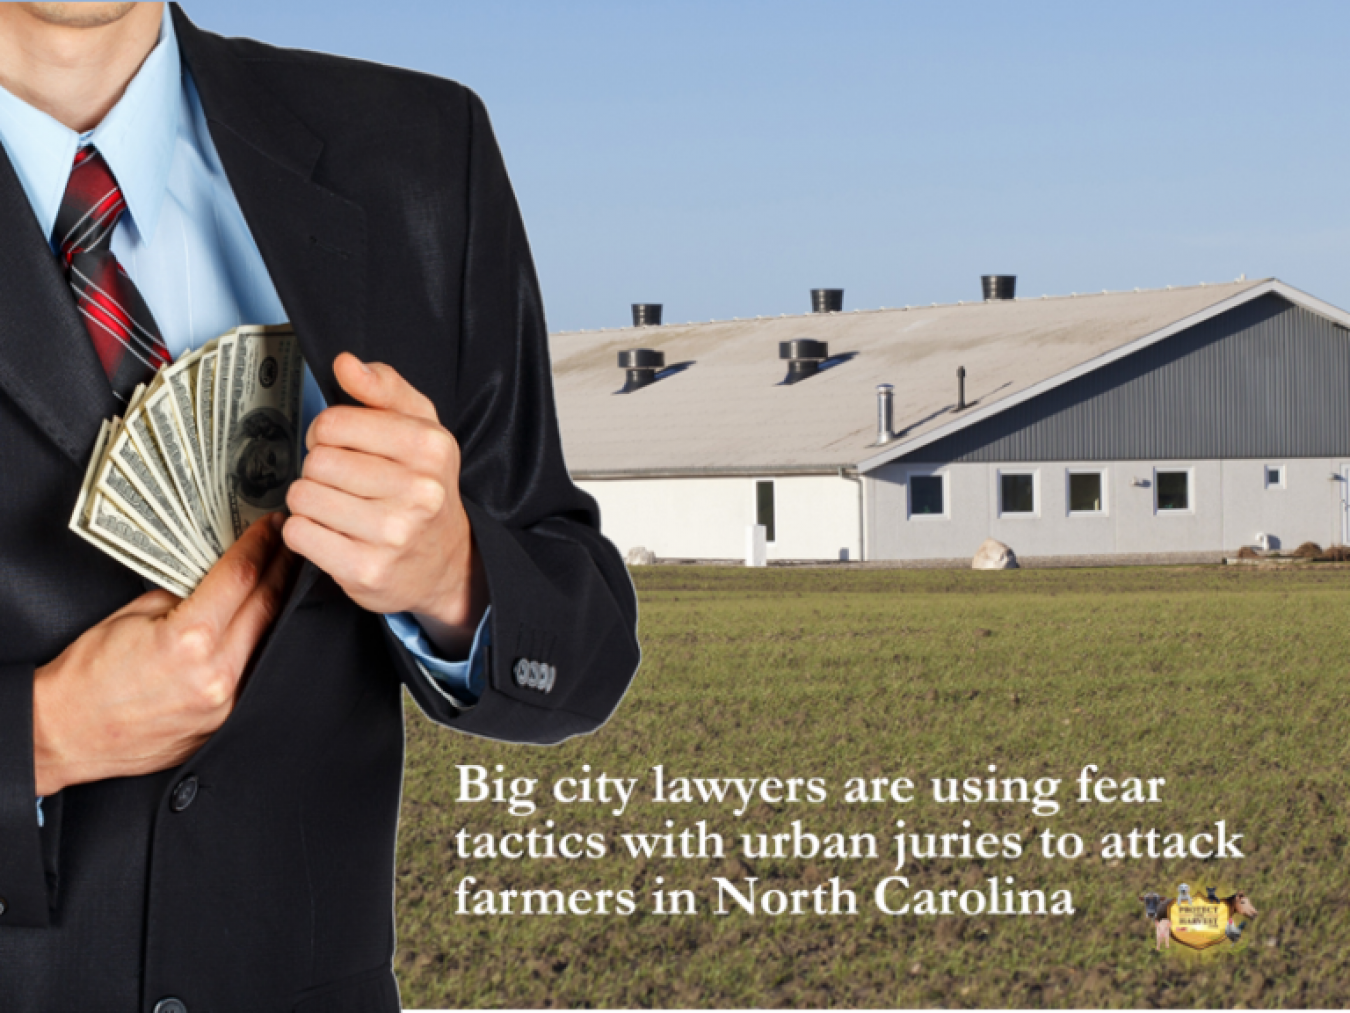 Texas Law Firm Targets North Carolina Farmers